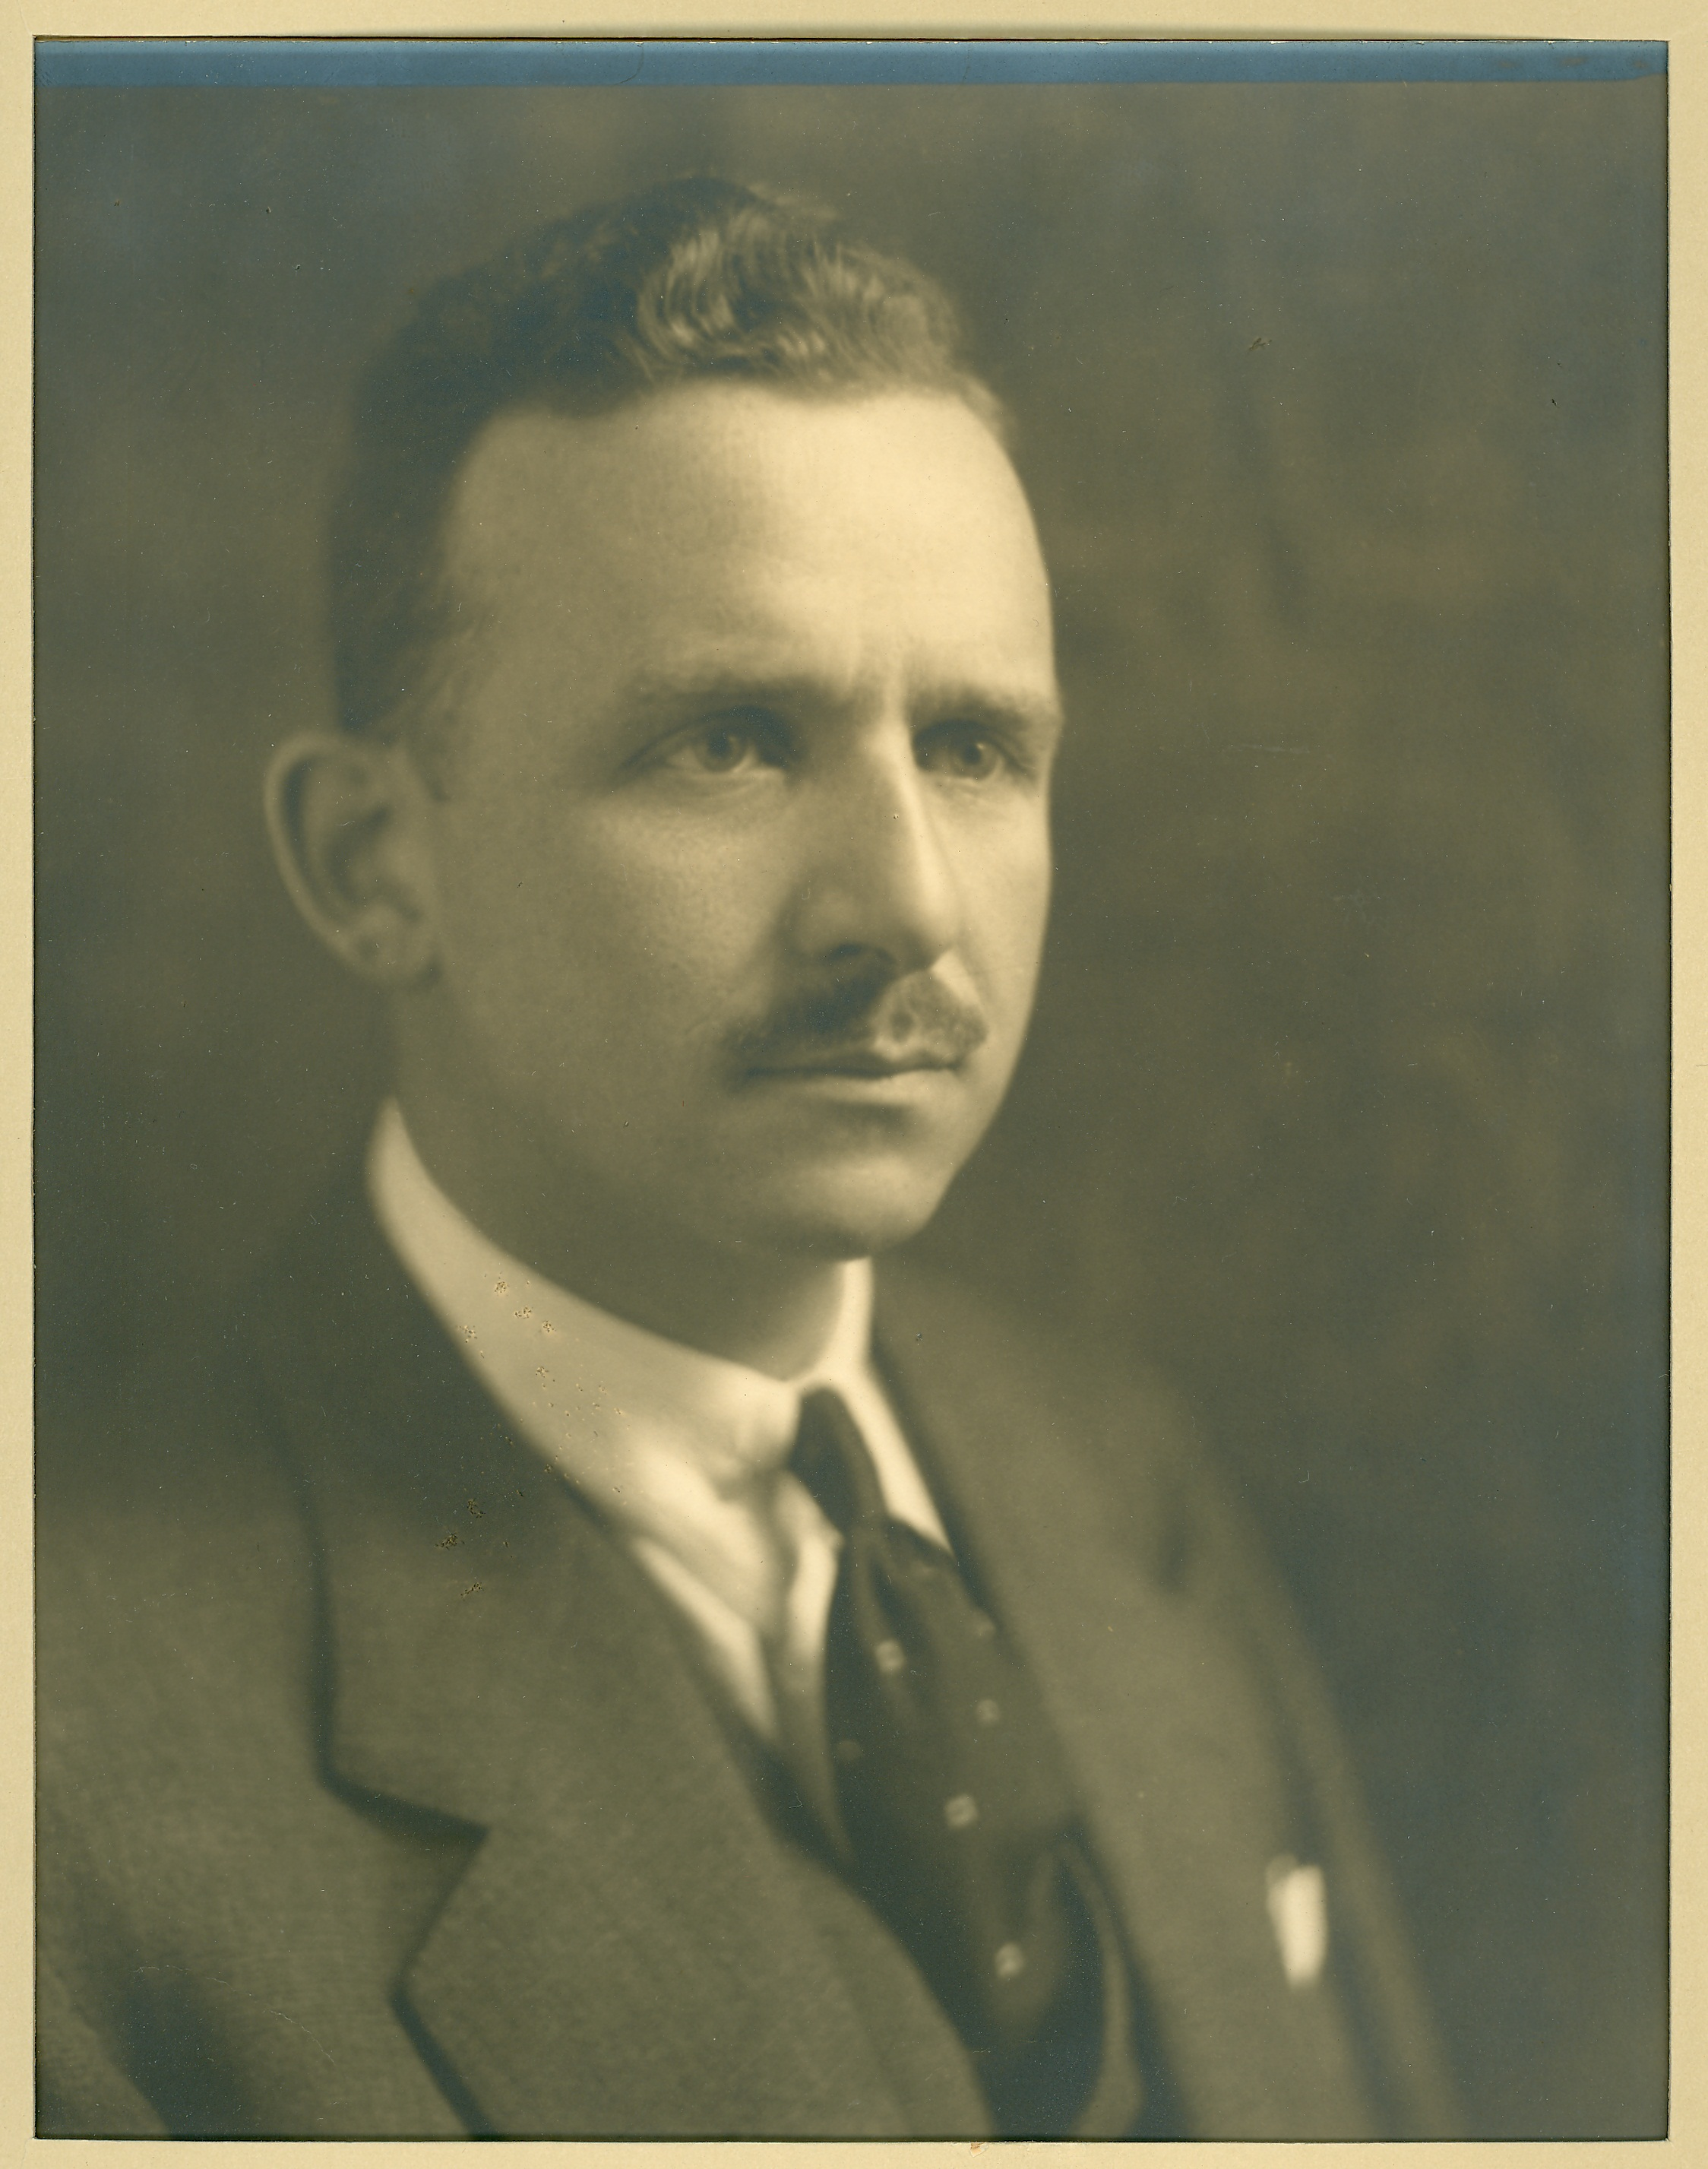 John Peters Humphrey, 1930. Photo: Blank and Stoller / McGill University Archives, - 2002-0086.04.10